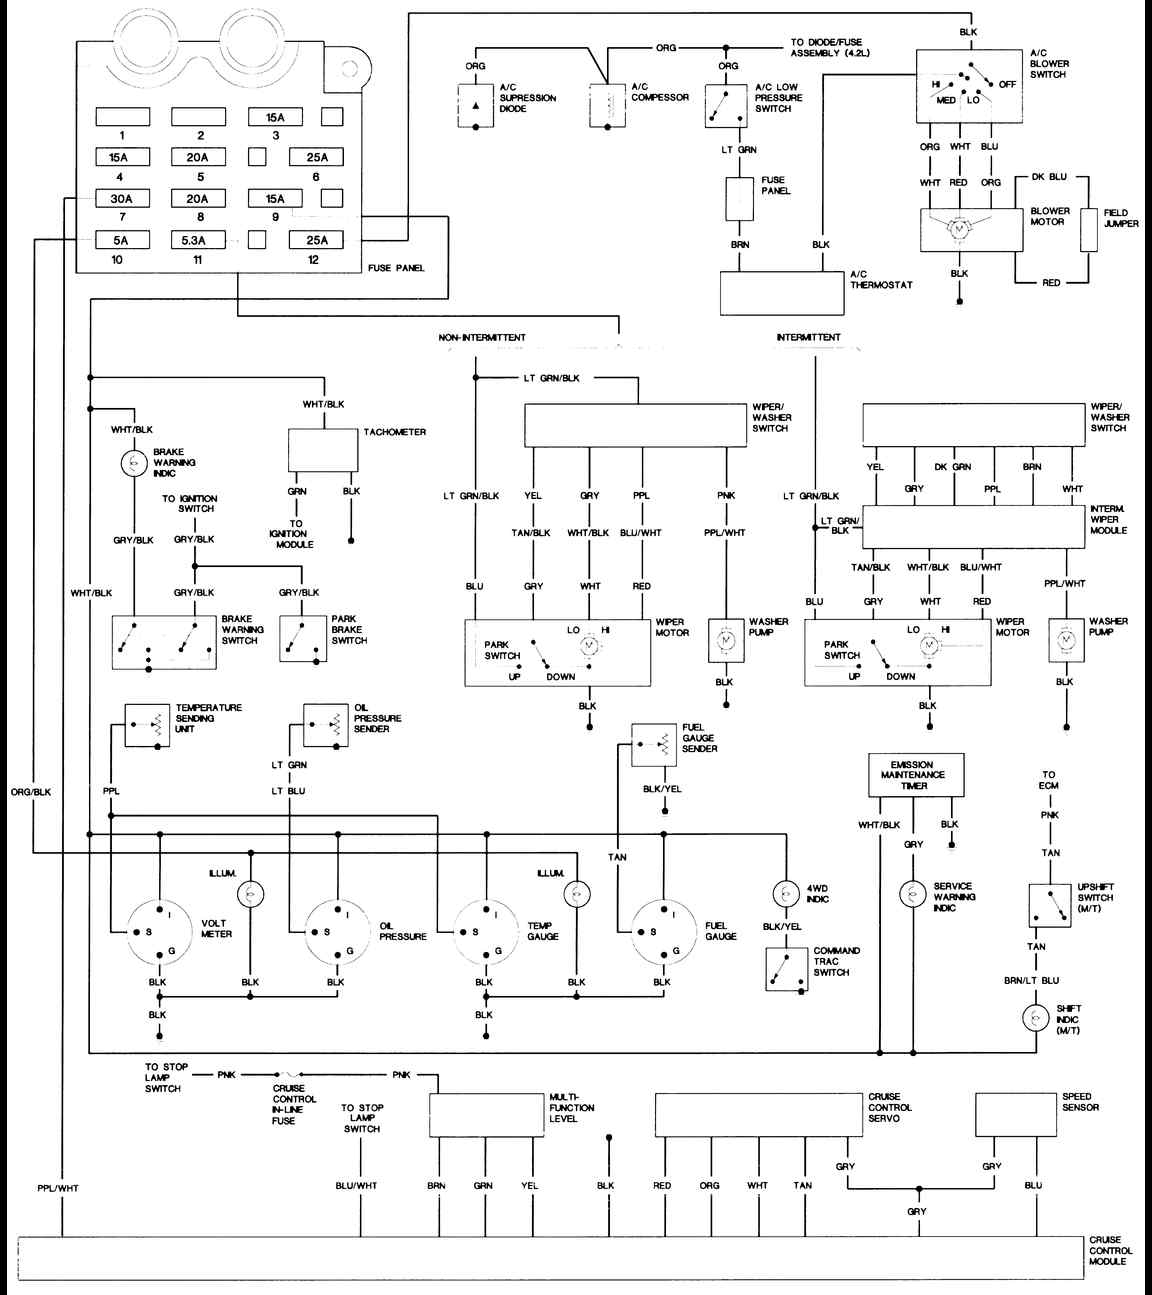 Jeep Yj Hvac Diagram Great Design Of Wiring 2000 Grand Cherokee Limited Wrangler Ac 31 Images 97 Wagoneer